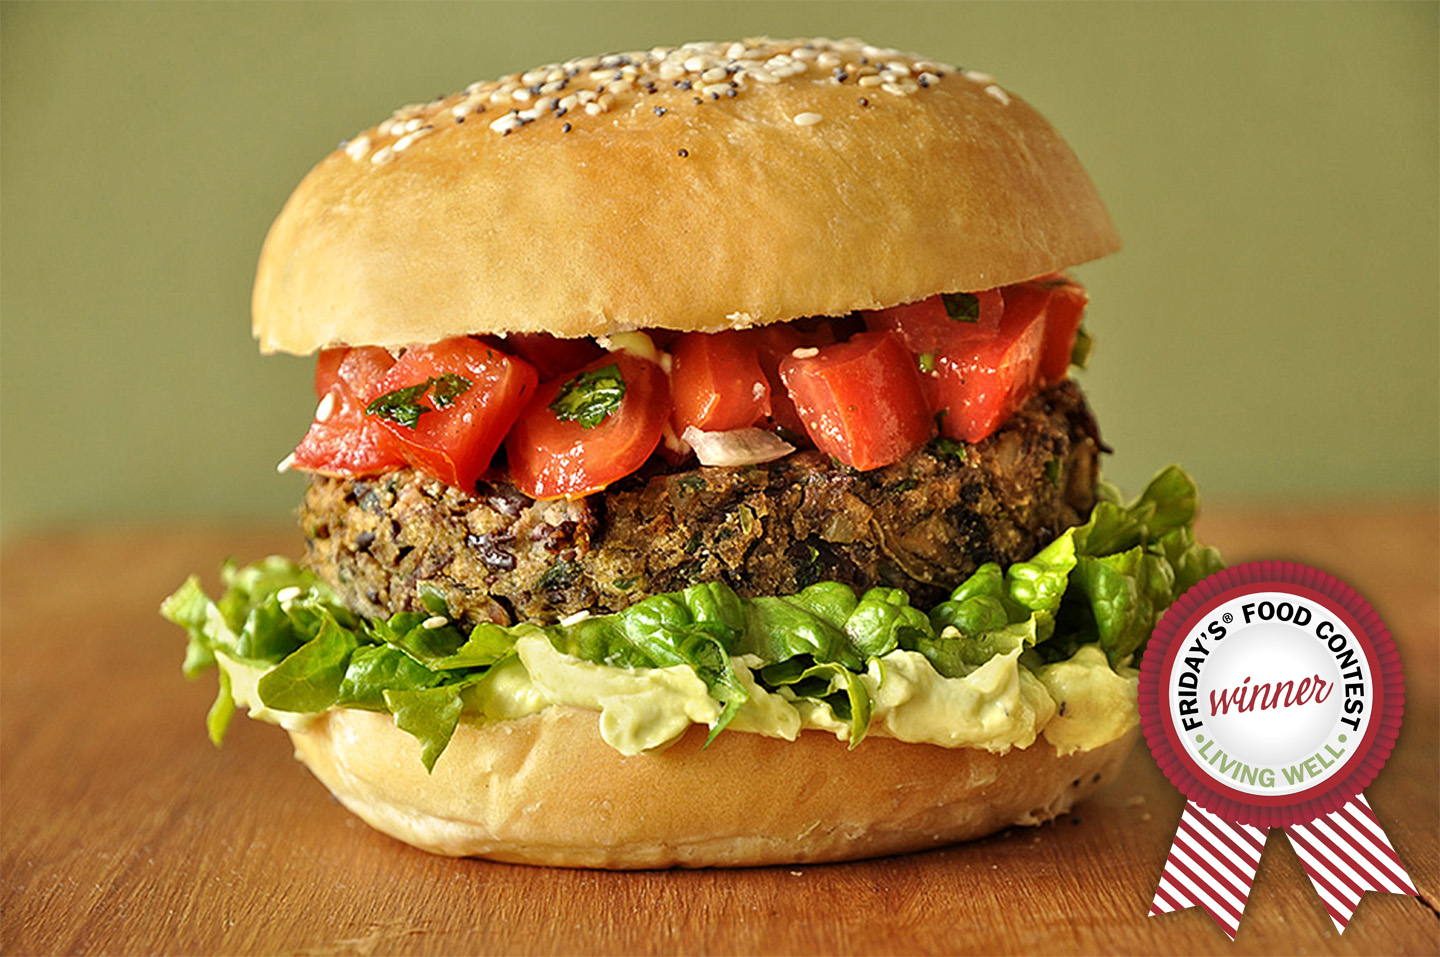 Veggie burger με σως αβοκάντο και salsa fresca / Red bean and mushroom veggie burger with avocado sauce and salsa fresca